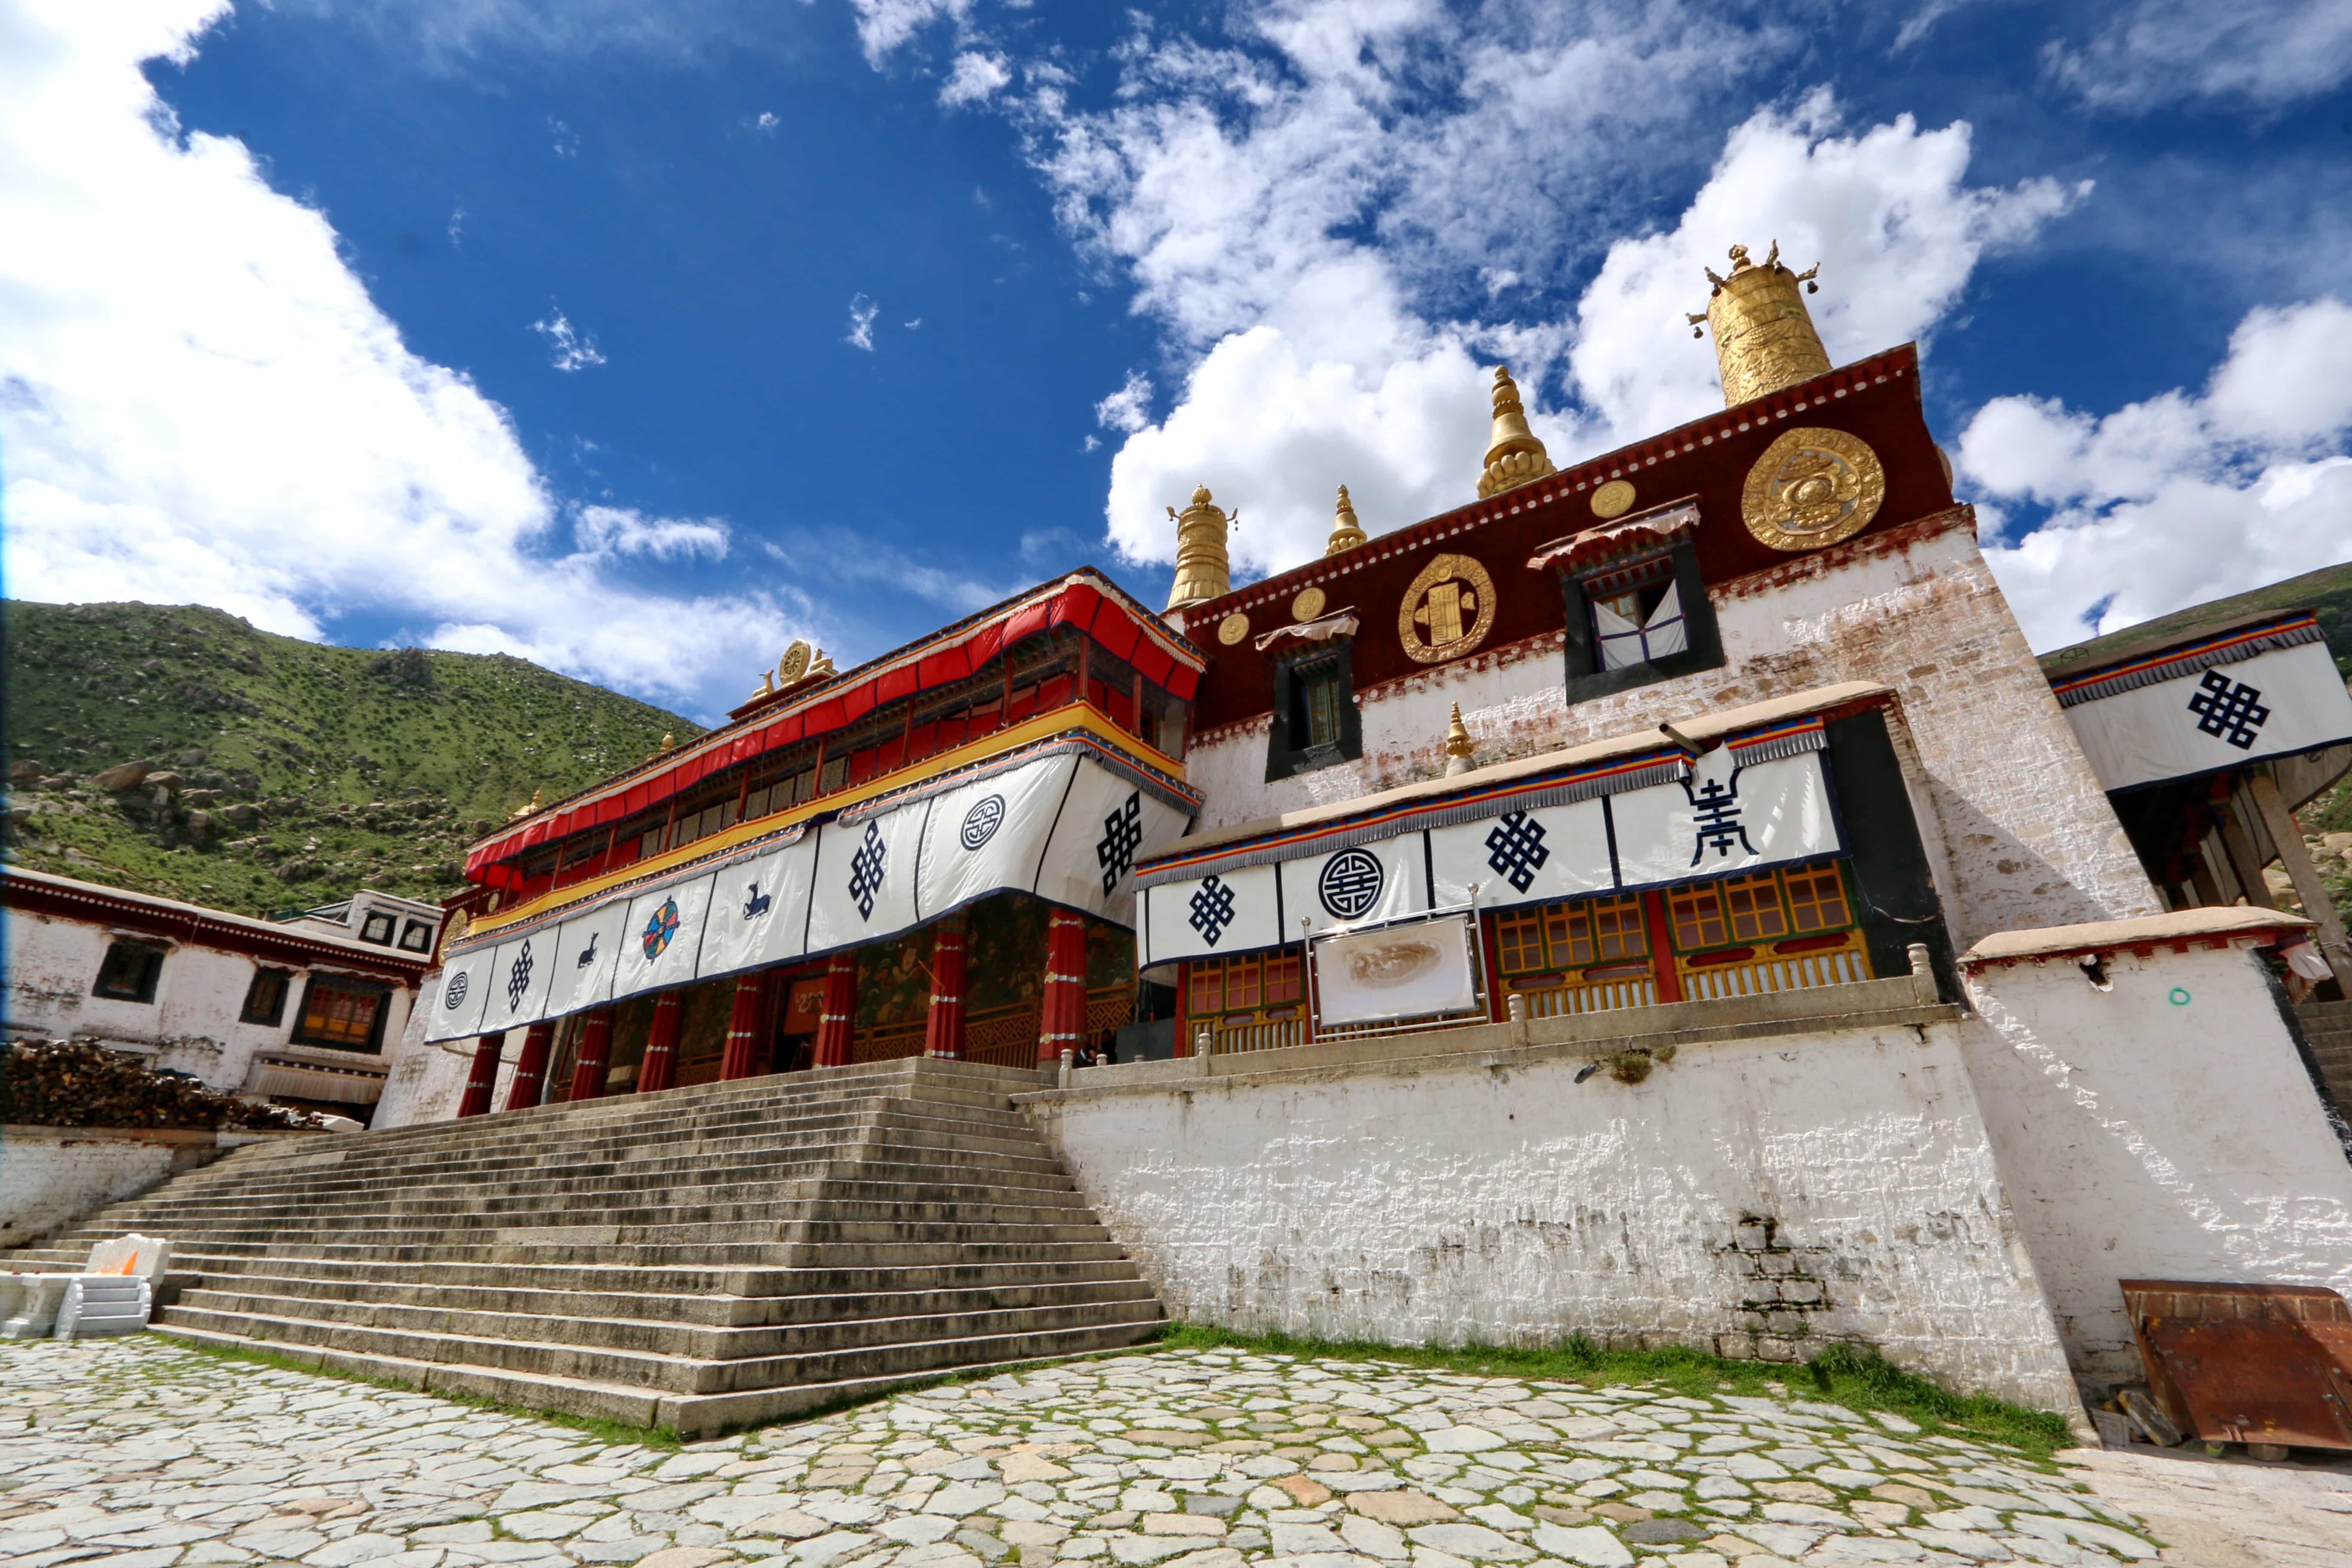 Drepung monastery in Lhasa, once the largest monastery in the world